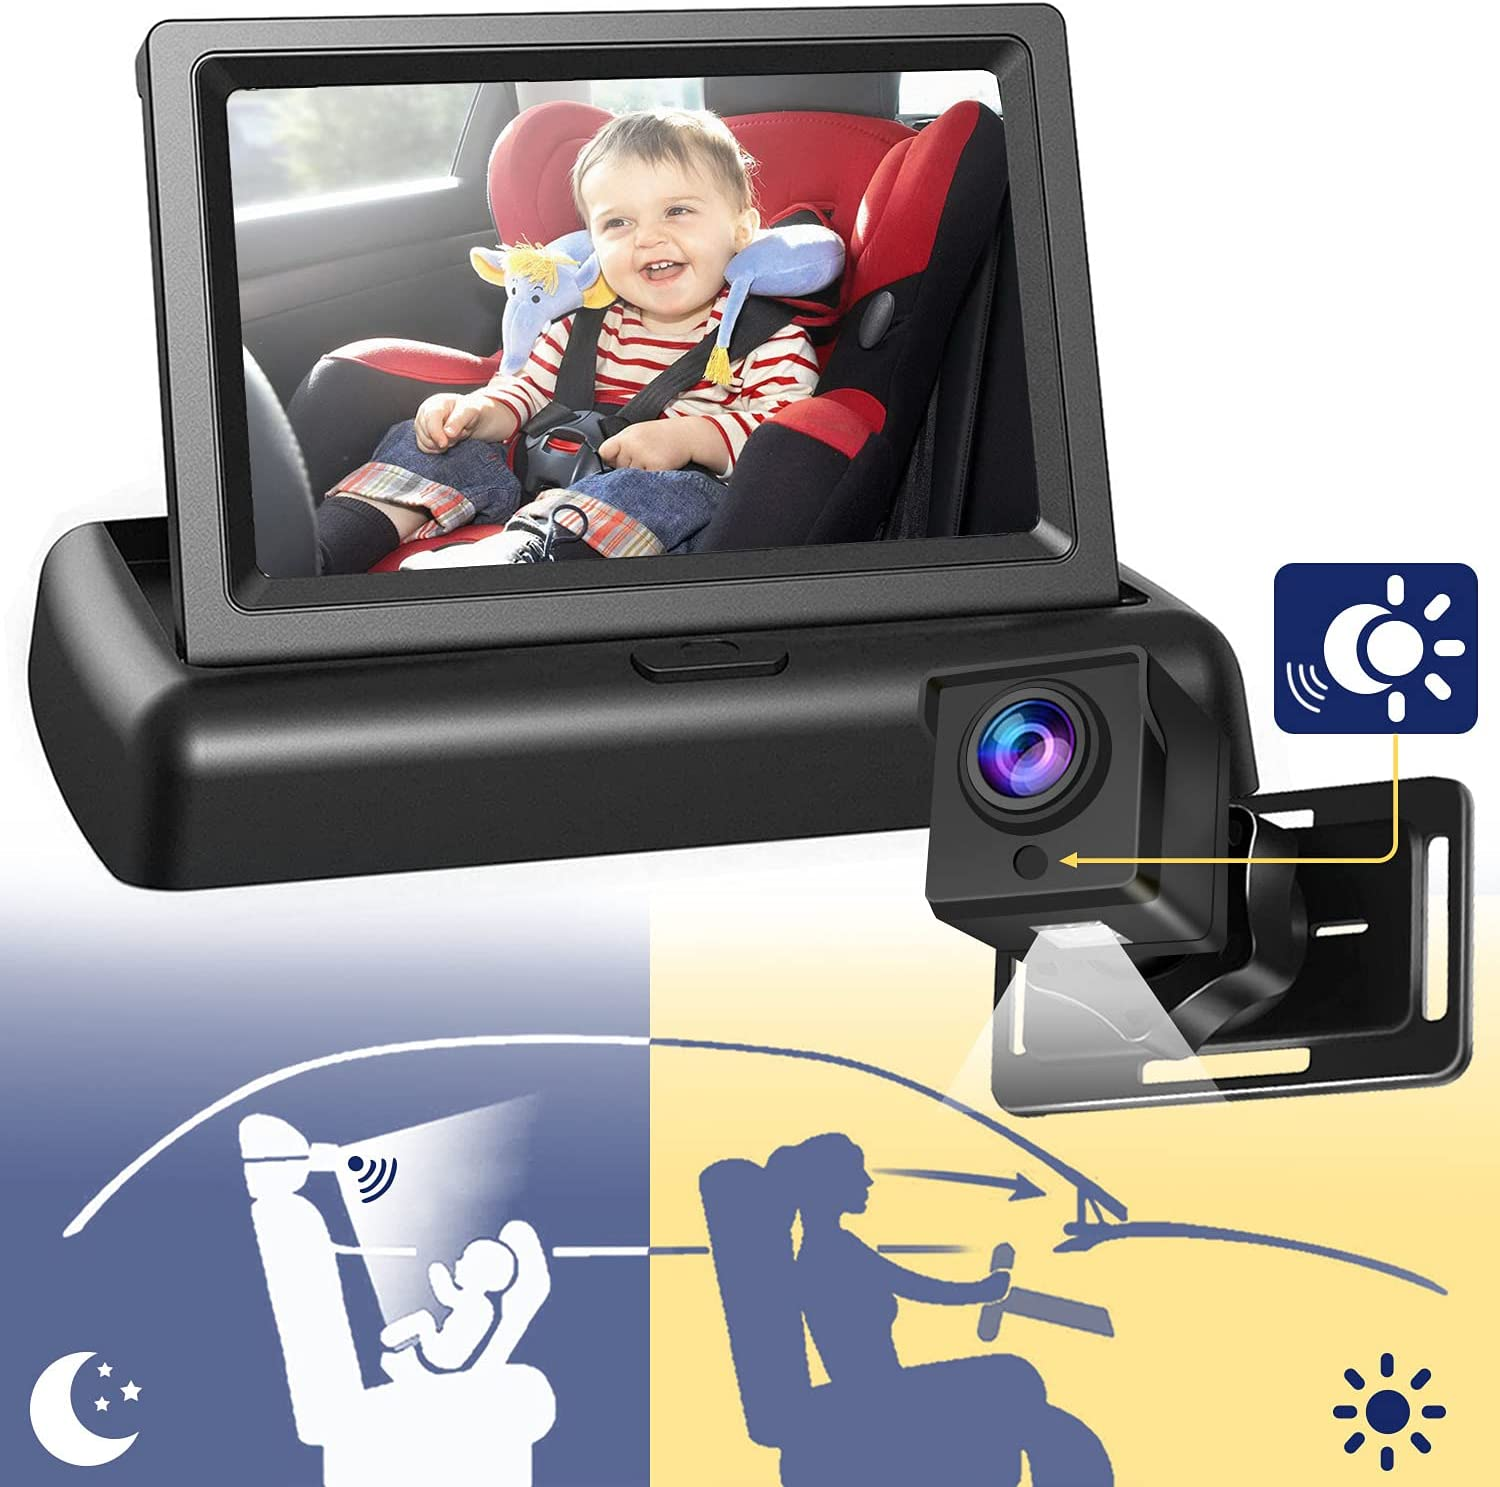 New Upgraded Baby Car Mirror Car Camera for Baby Rear Facing, Car Seat Mirrors Car Baby Monitor with 4.3'' HD Colorful Night Vision, Wide View, Suitable for all Family with Babies